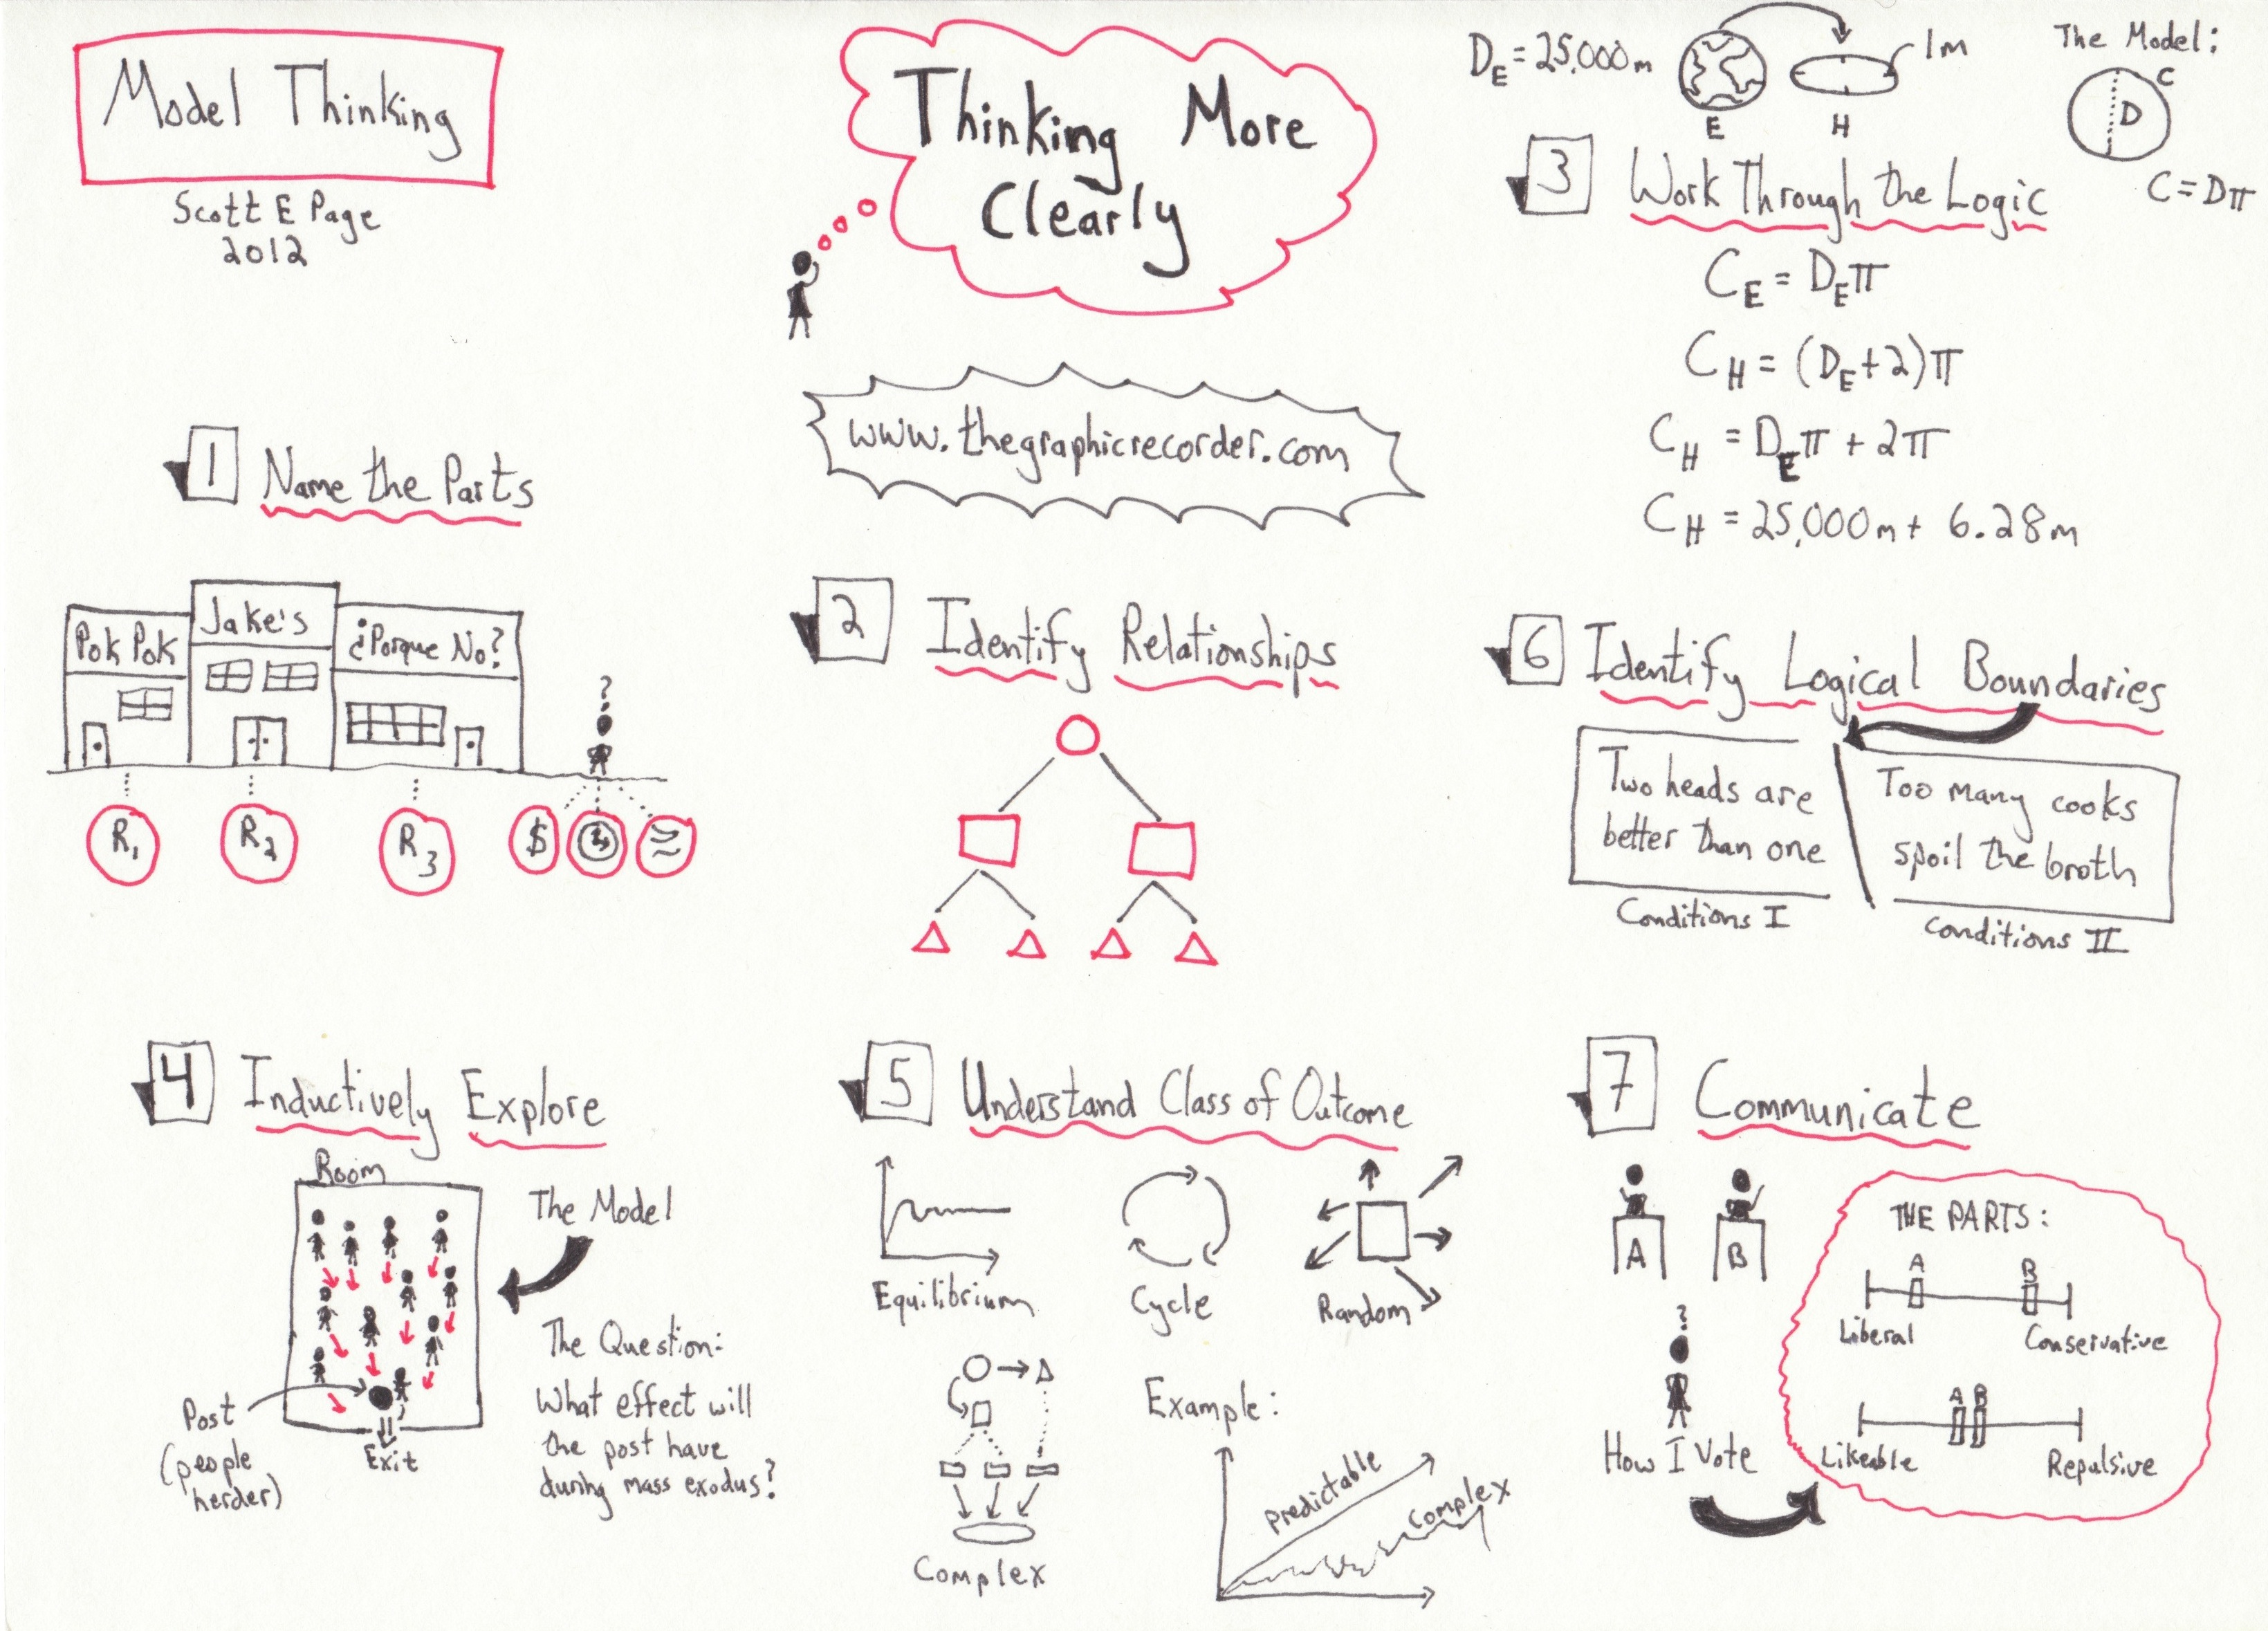 The graphic recorder model thinking sketch notes thinking more clearly scott page